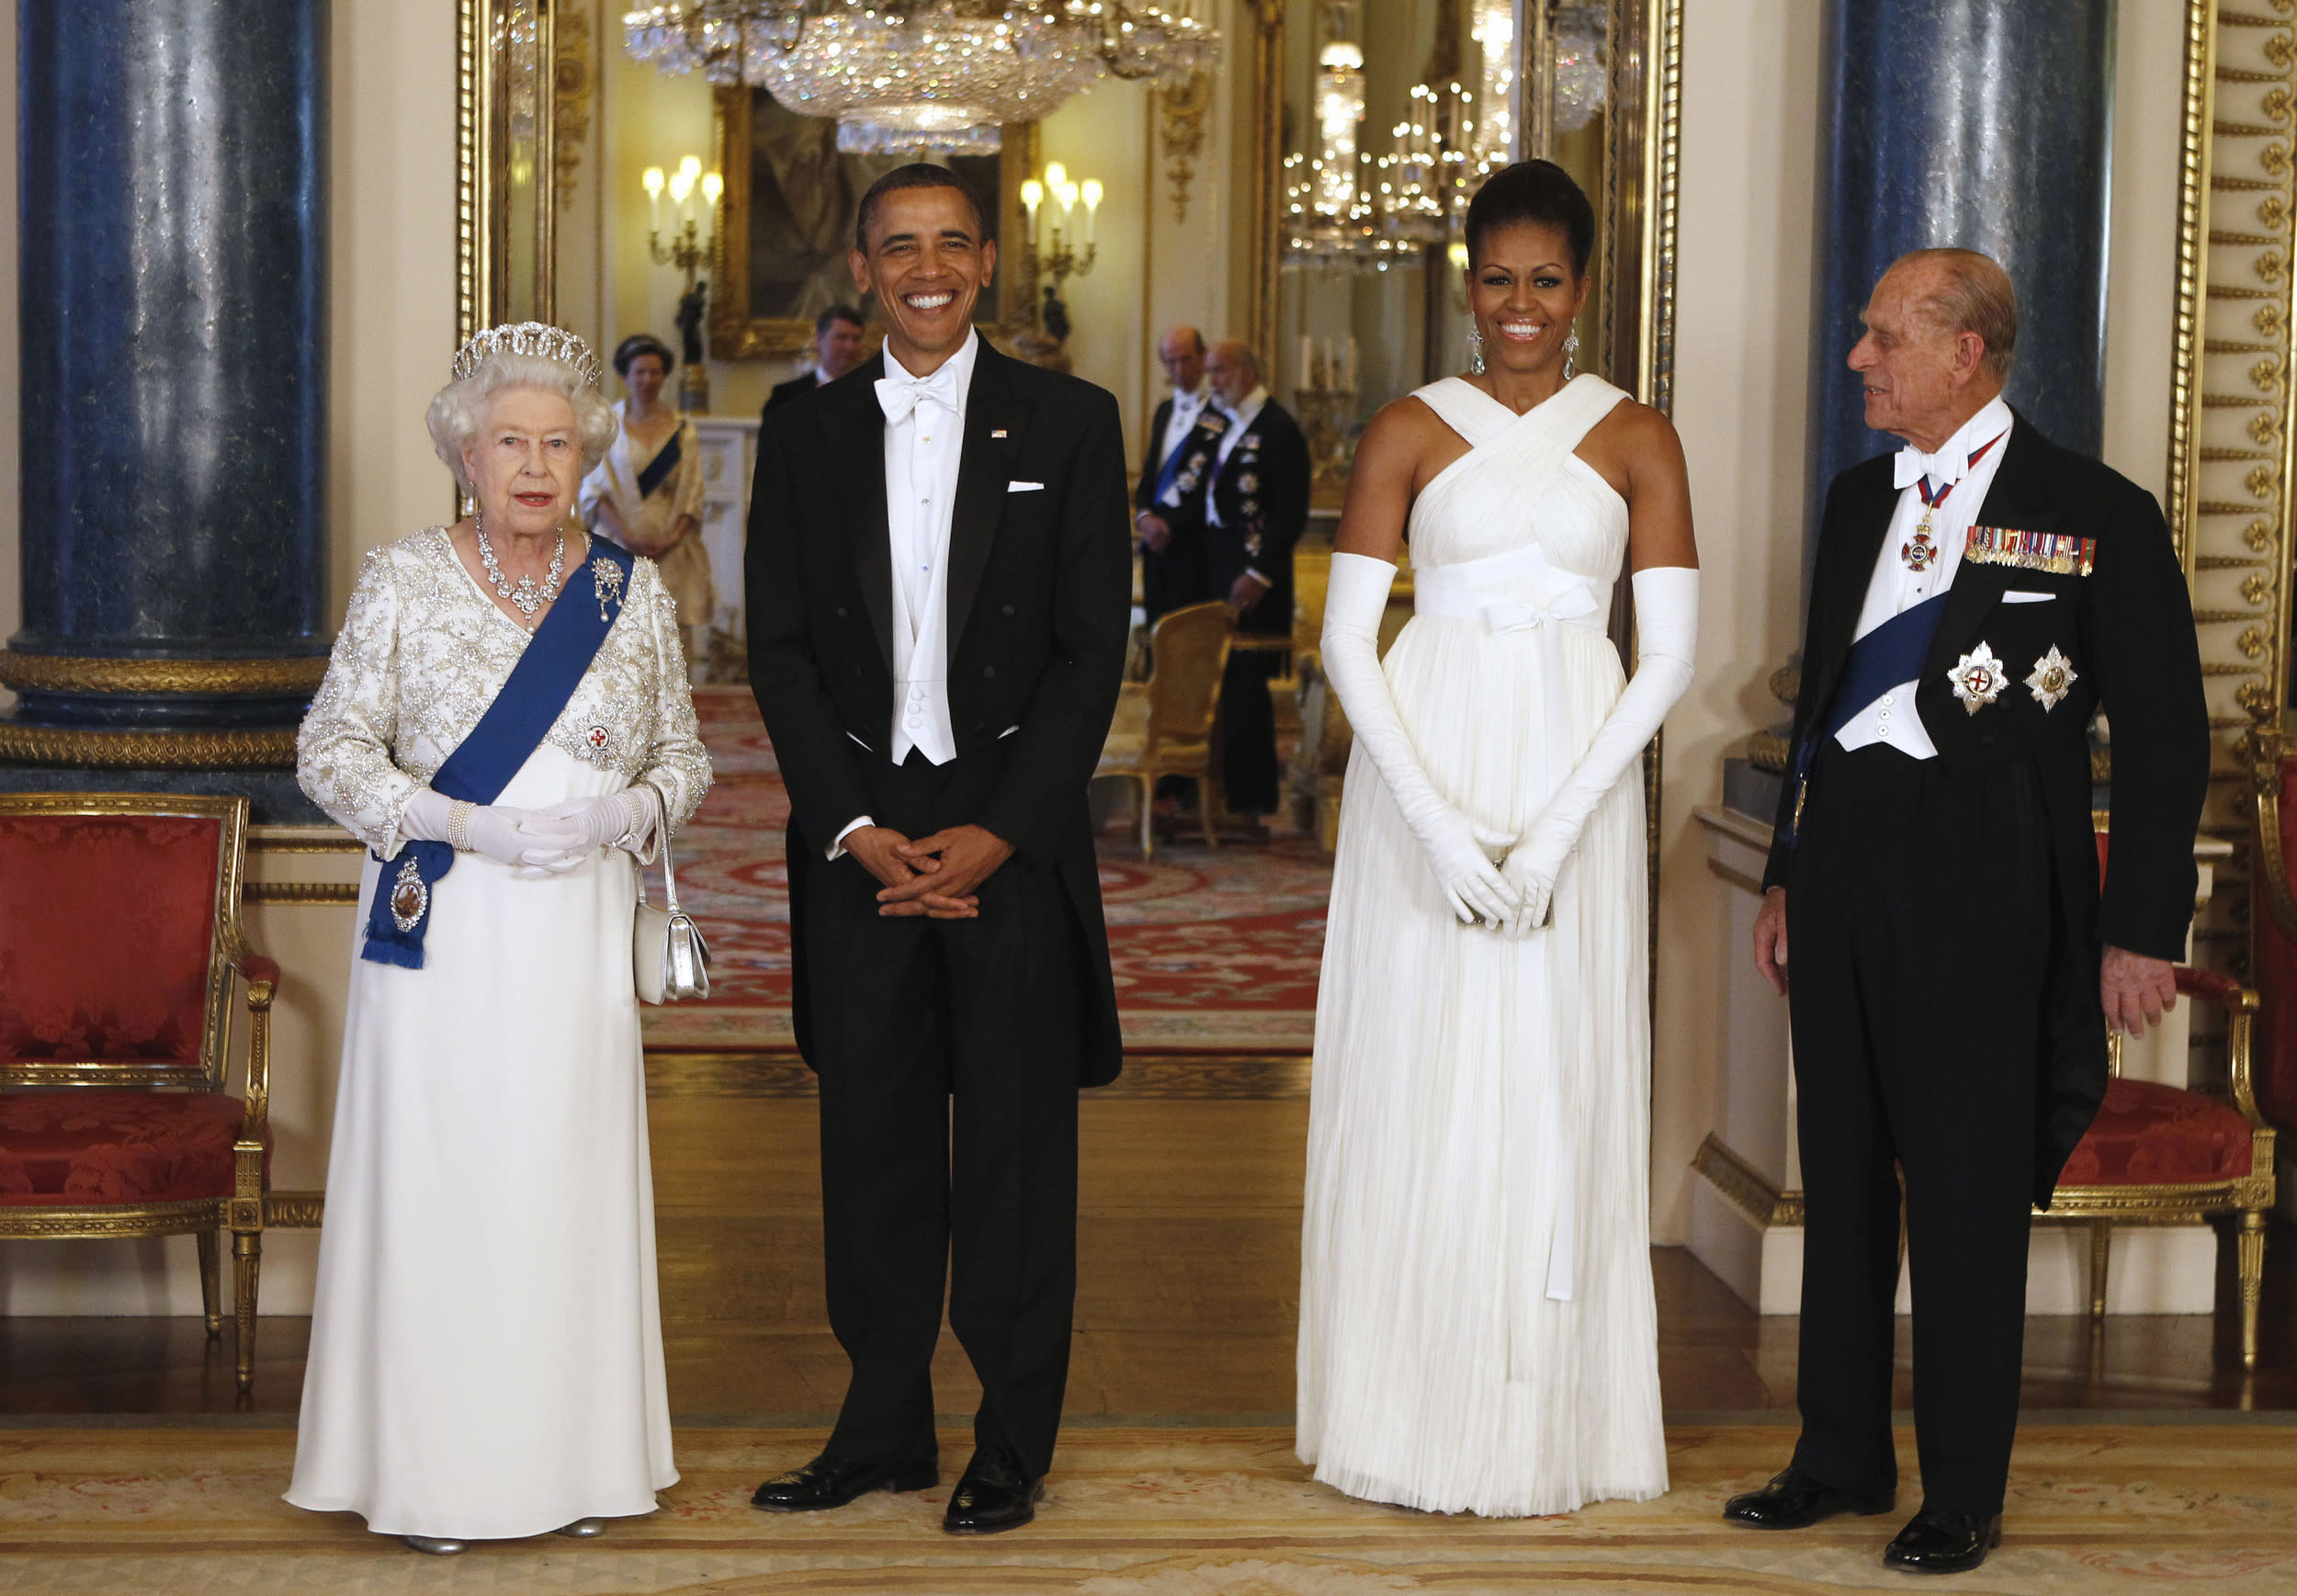 FILE - In this May 24, 2011 file photo President Barack Obama, first lady Michelle Obama, Queen Elizabeth II, and Prince Philip pose for photographers prior to a dinner hosted by the queen at Buckingham Palace in London. With his departure from Berlin on Friday, Nov. 18, 2016 Obama will leave Europe for the last time as U.S. President. (Larry Downing/Pool photo via AP, file)